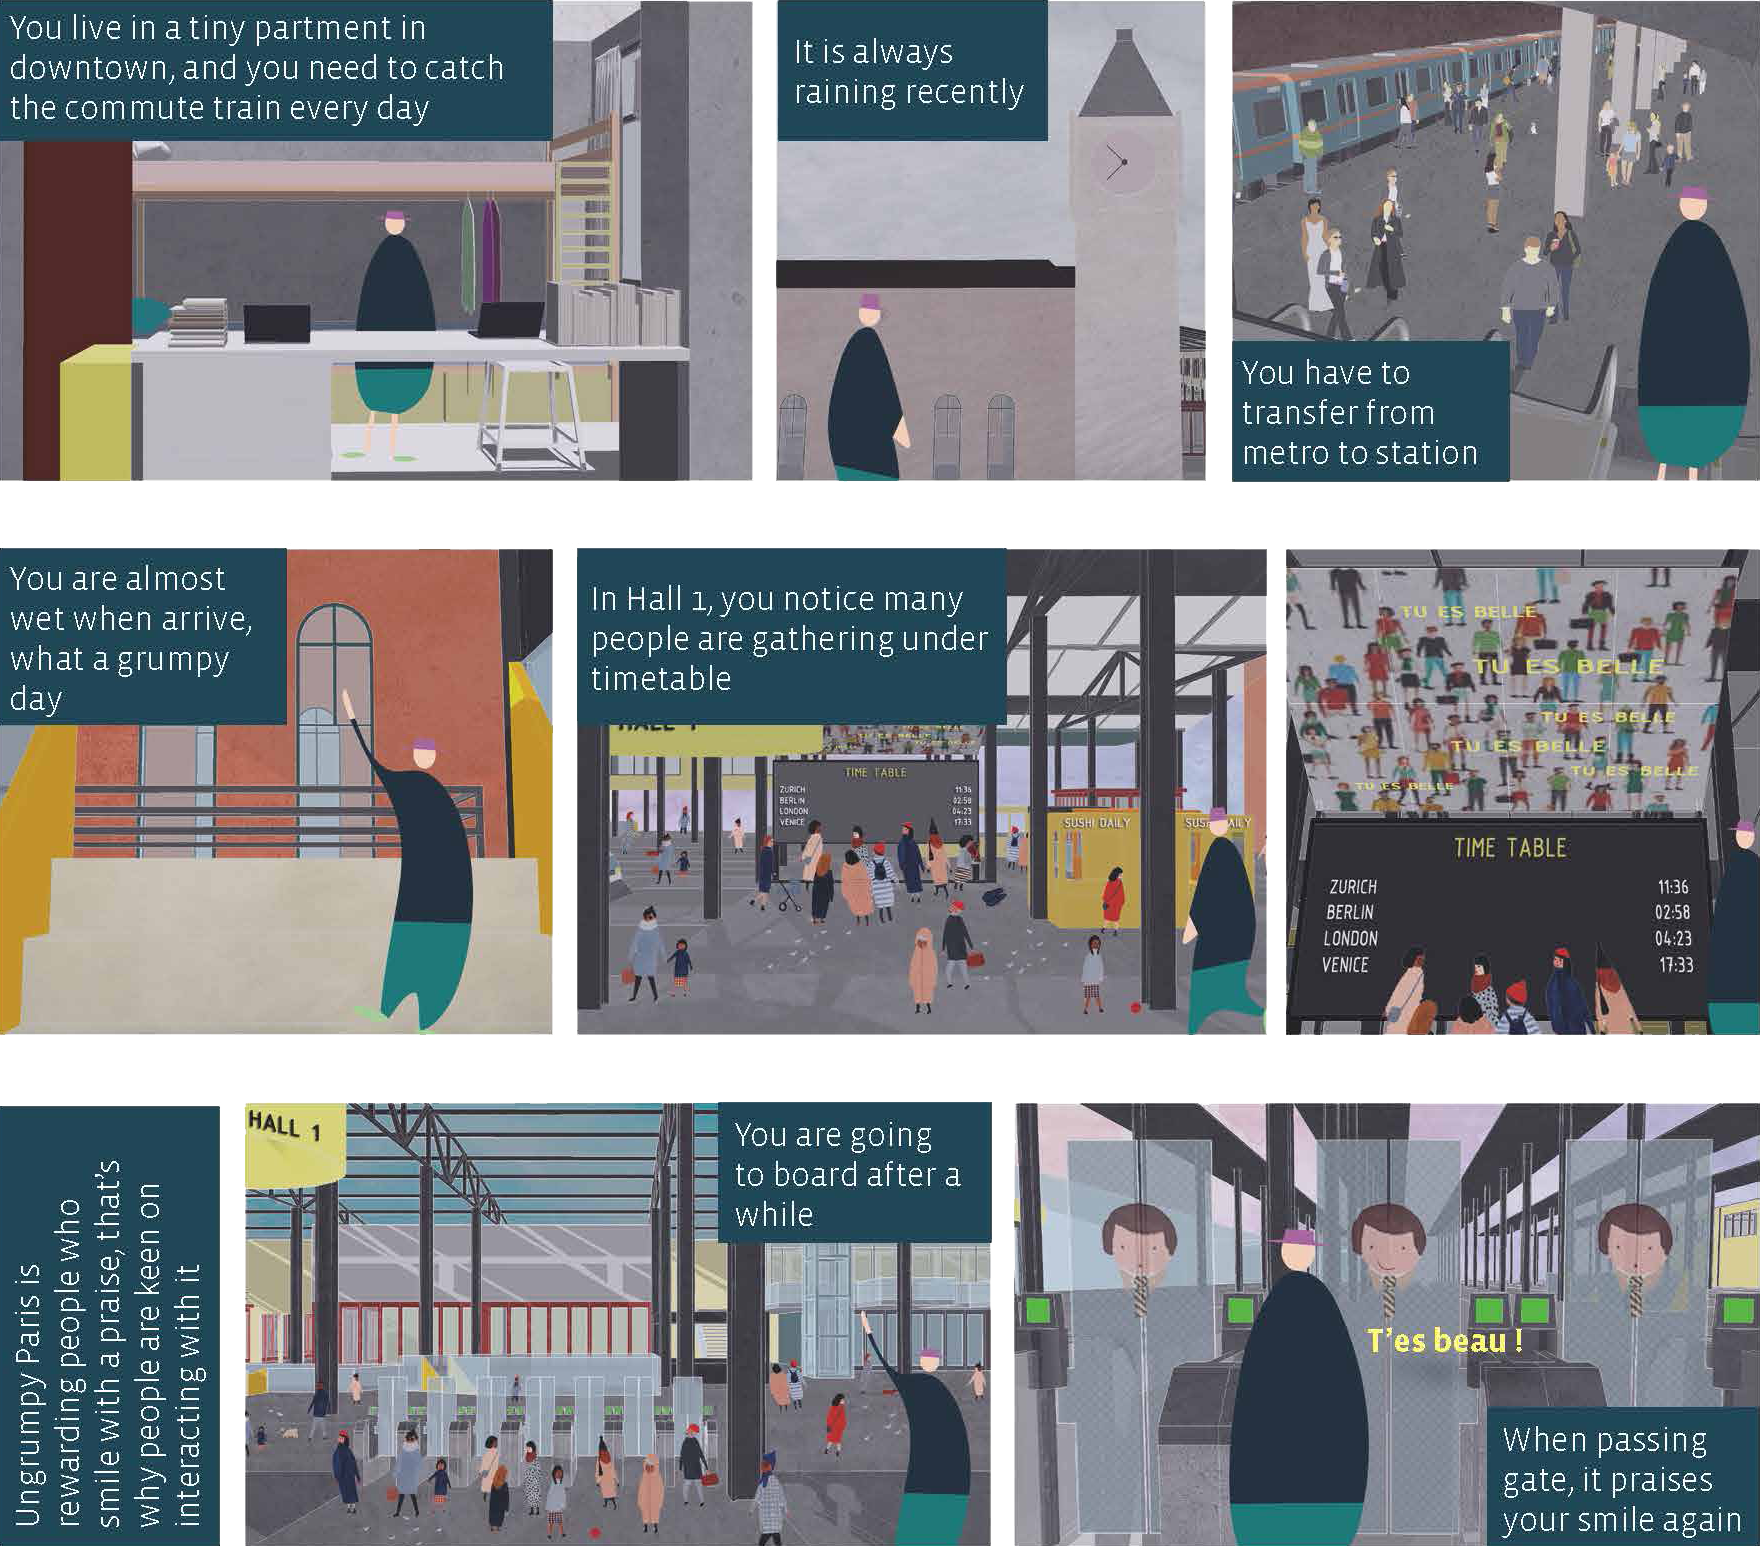 1. A story illustrates how the project helps people ameliorate negative emotions